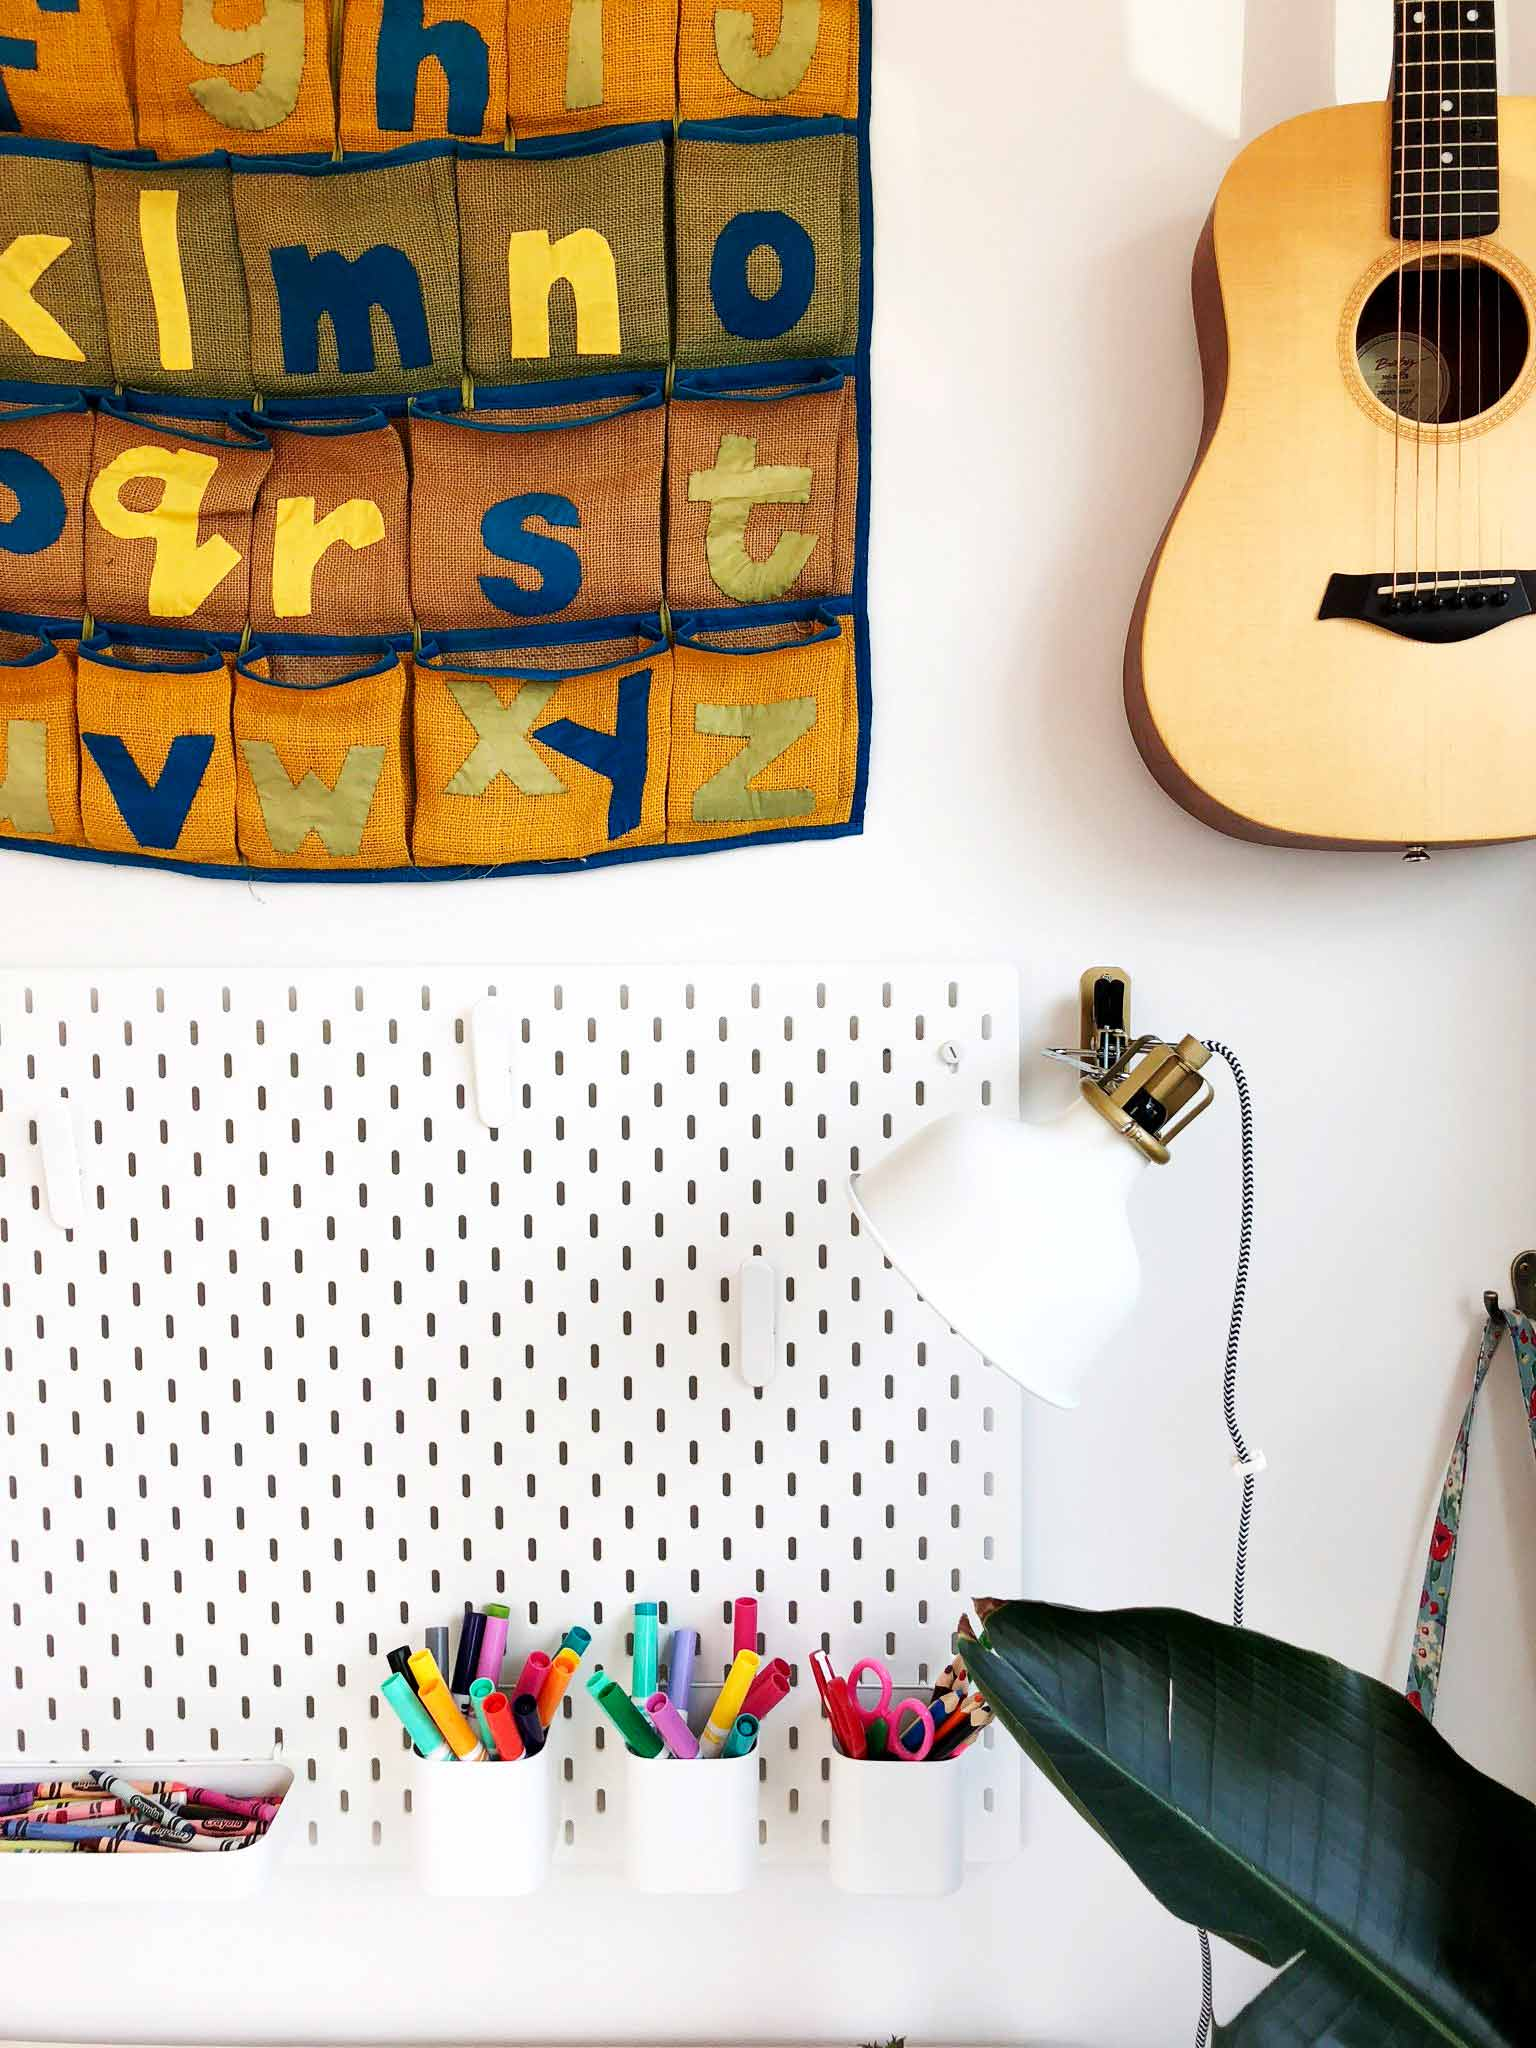 IKEA SKADIS pegboard with pens and crayons, guitar mounted on the wall